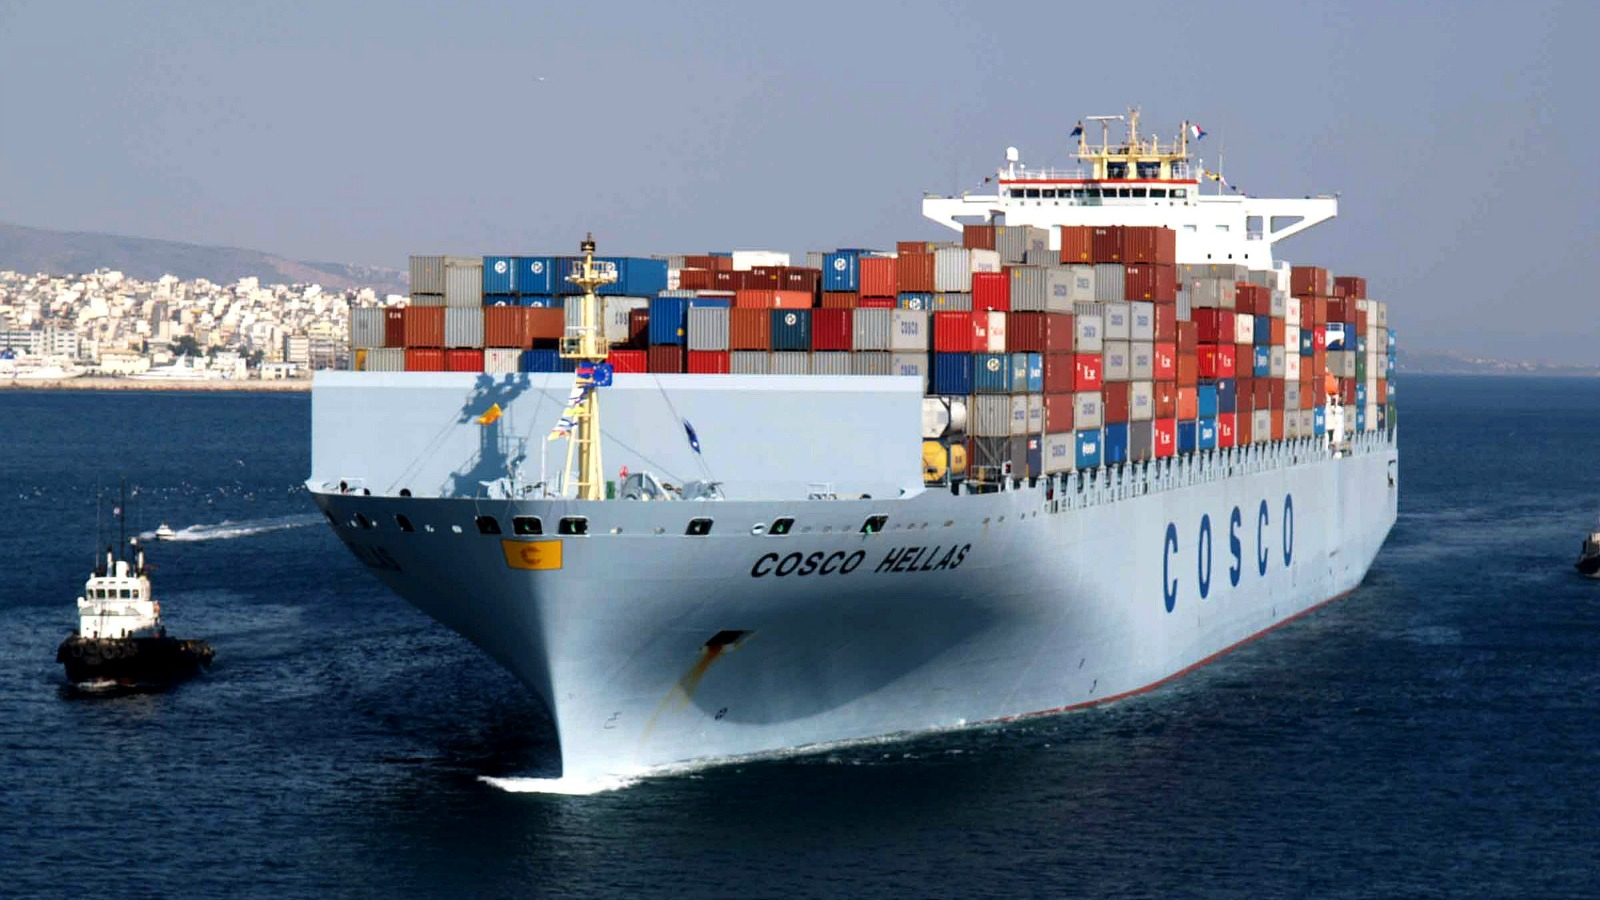 A COSCO container ship enters the Piraeus port in Greece